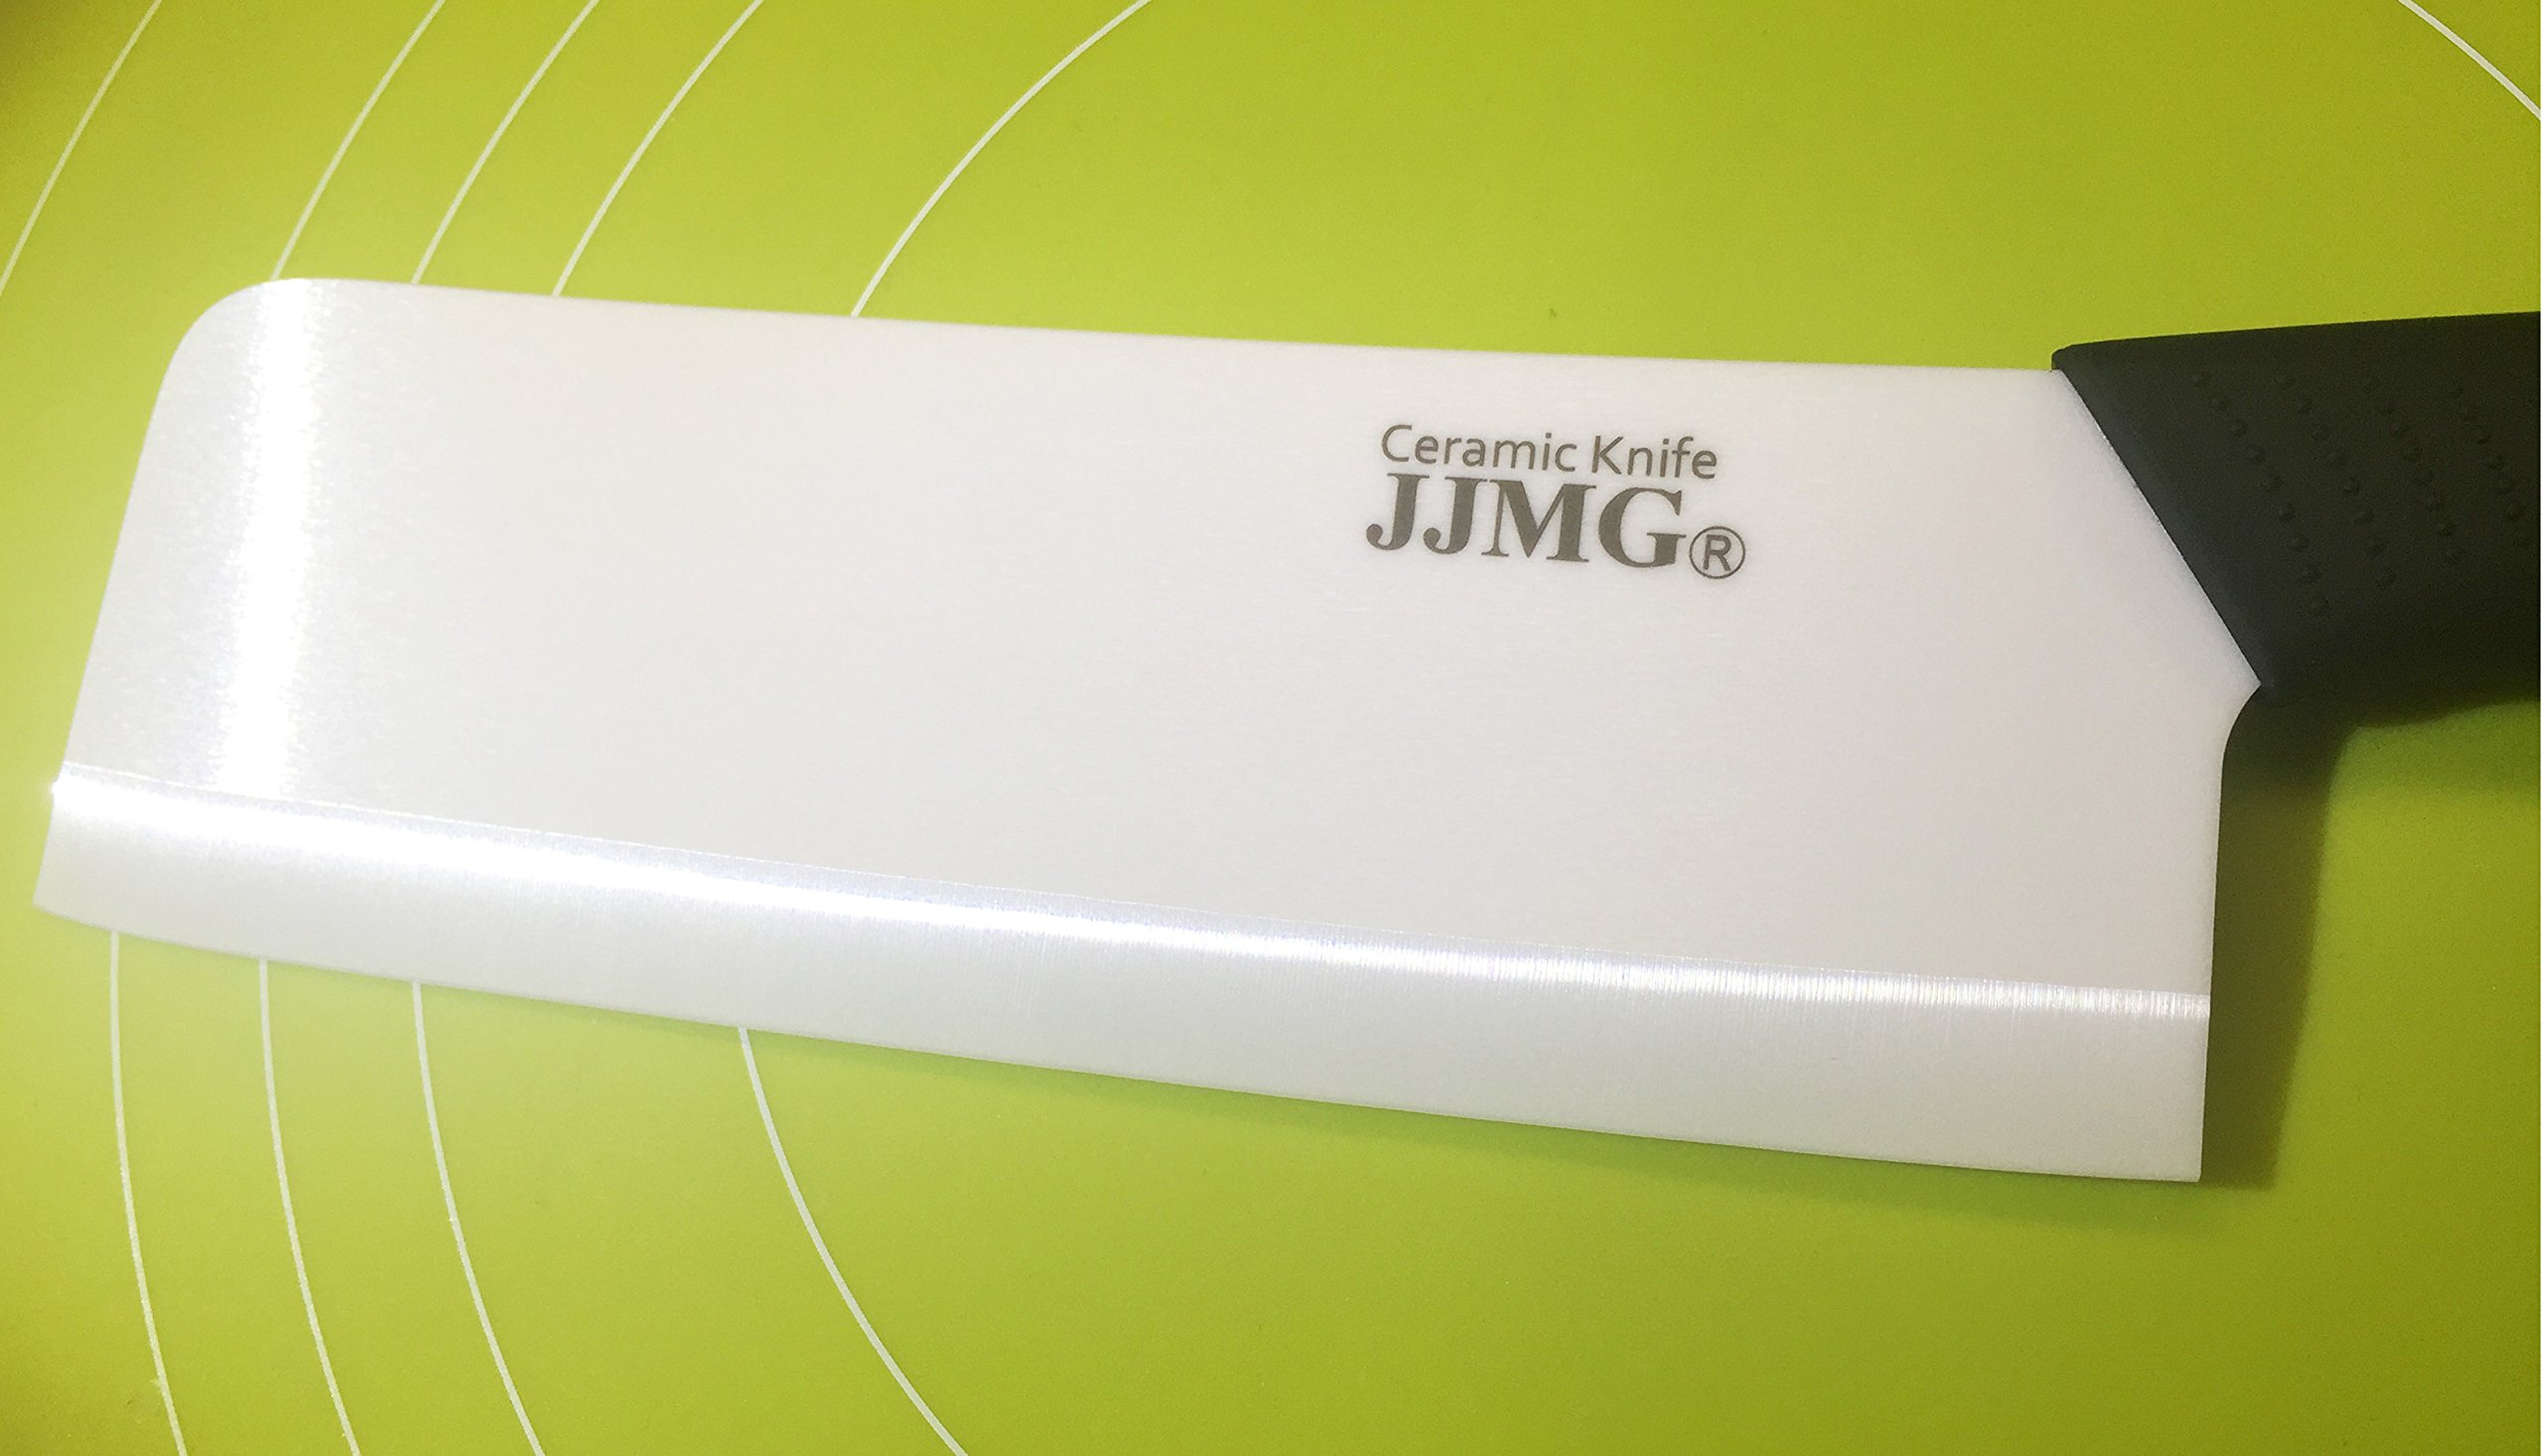 JJMG Ceramic Meat Cleaver Knife Sharp Durable Twice Thicker than Leading Brands non-slip grip Handle Zirconium Blade Cut Slice Dice Steak Pork Chicken Cheese Rust Wear Resistance 3 SHARP & DURABLE LONG LASTING SHARPNESS: Perfect for Cutting Slicing Mincing & Dicing Meat Cheese and Vegetables. Made of High Quality Ceramic, 60 times more Wear-Resistant than Metal knifes. Easy to Maintain, Holds its Sharp Edge. The knifes blades are made by Zirconium, only diamonds are harder, and stays sharp 15 times longer. NO RUST & BPA-FREE: Rust Resistant, Anti-acid and Alkali Material, Non-toxic, No Contamination, No Metal smell, Easy to Use. will retain its original sharpness up to 15 times longer than steel blades. You will never need sharpening any more! NO OXIDATION: Keep your vegetables free from oxidation when cutting with these ceramic knifes. Keep your vegetables meat & food fresh for a longer period of time.